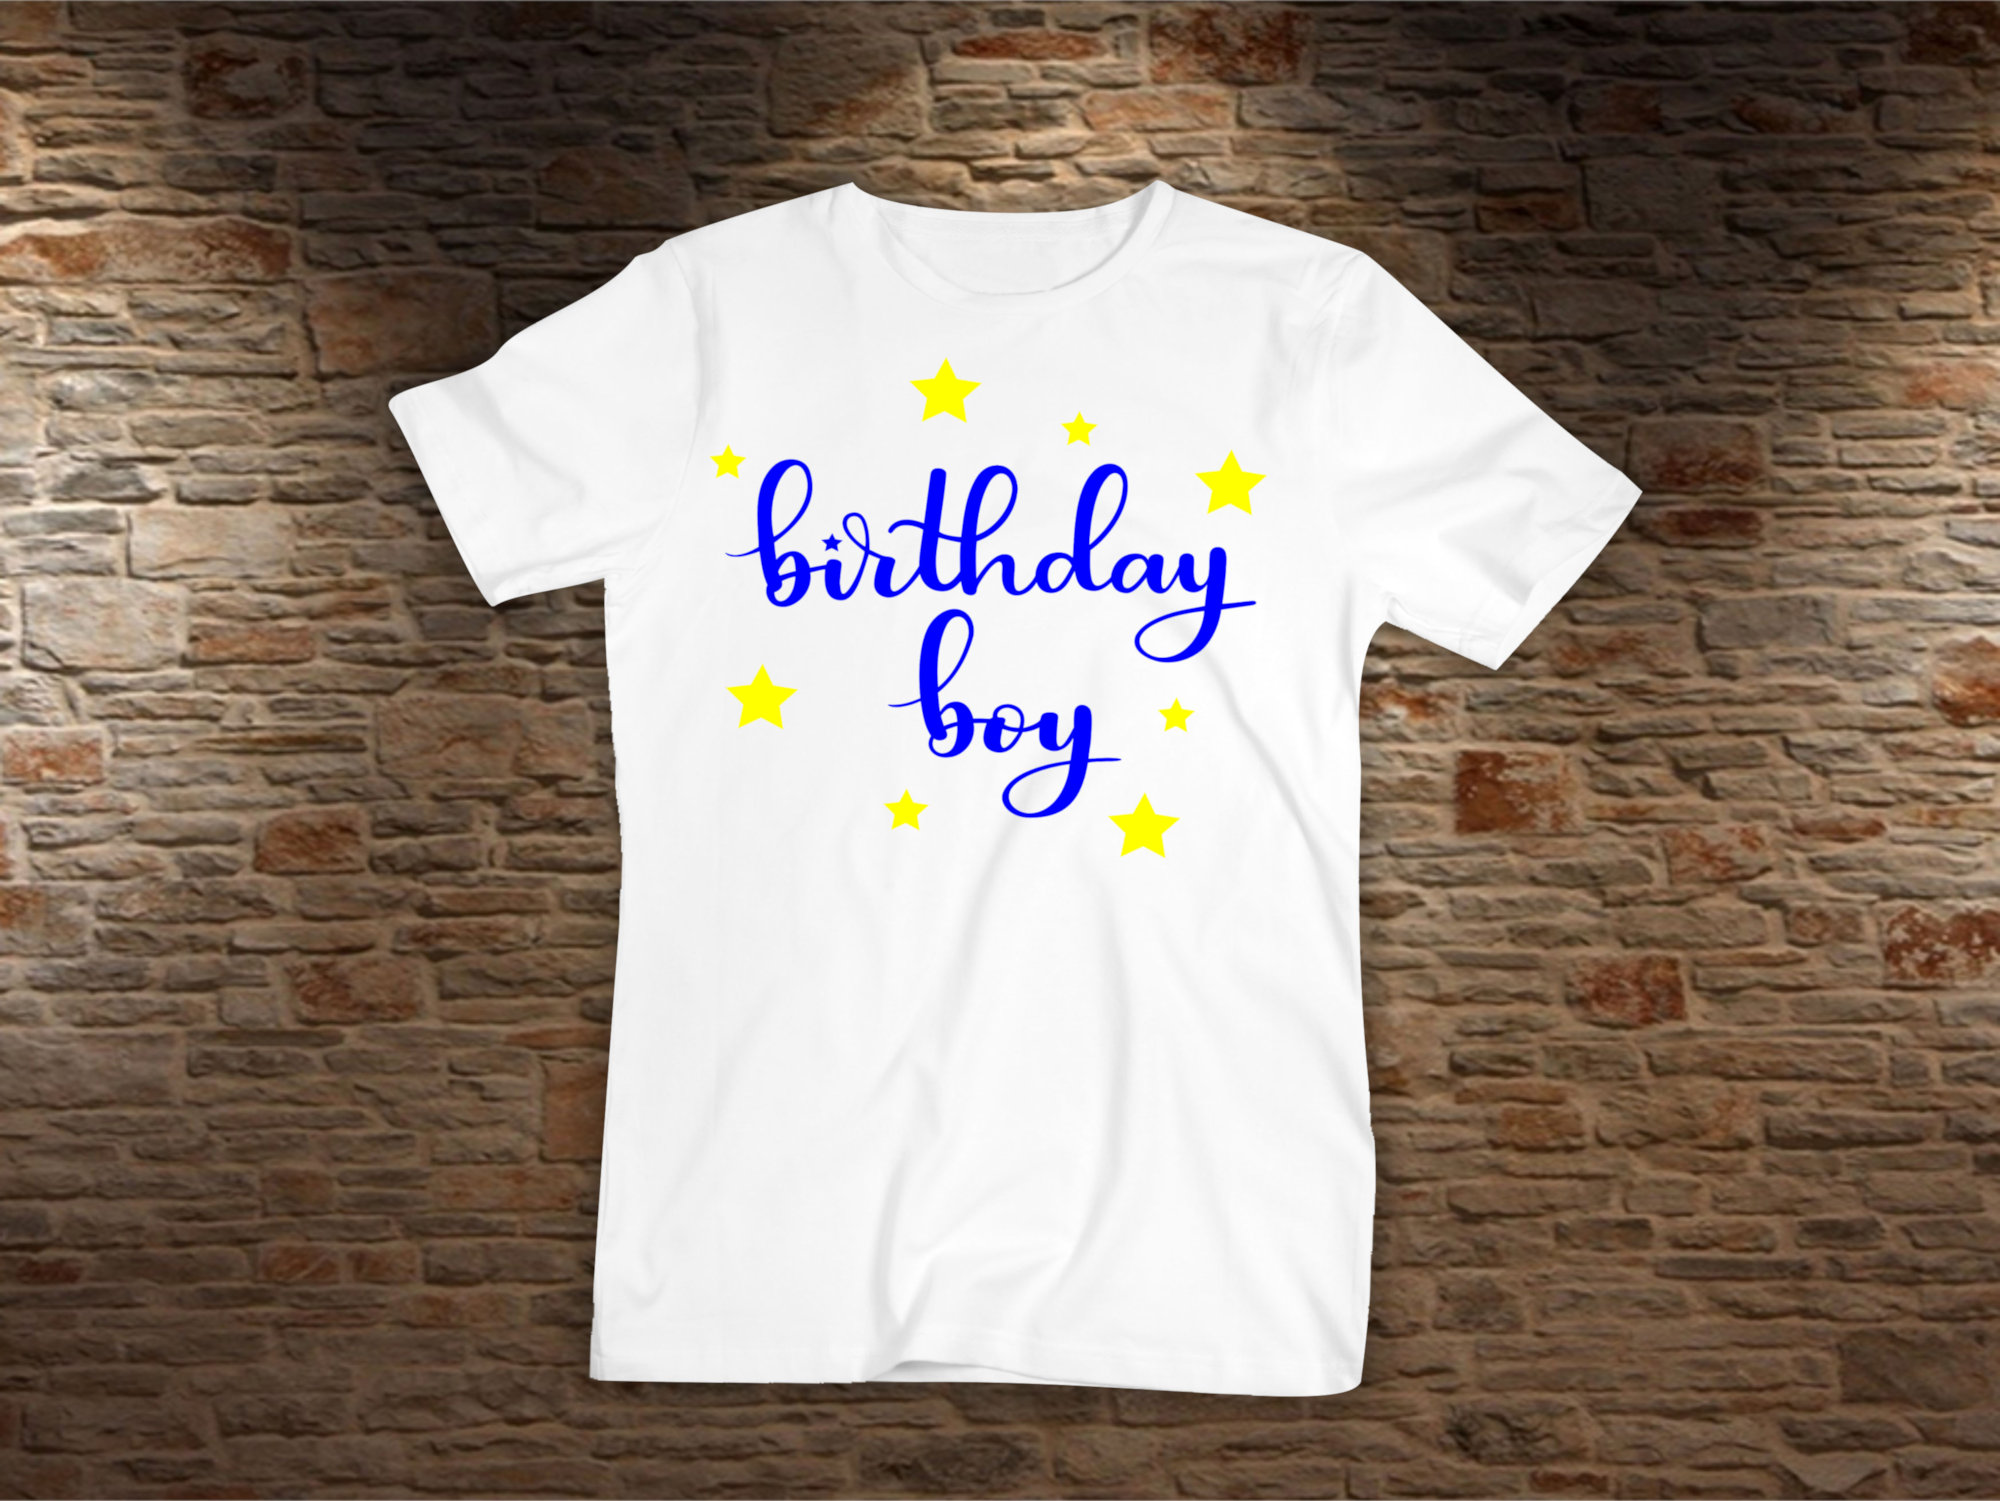 Birthday SVG Bundle - 4 birthday SVG files, Handlettered example image 7